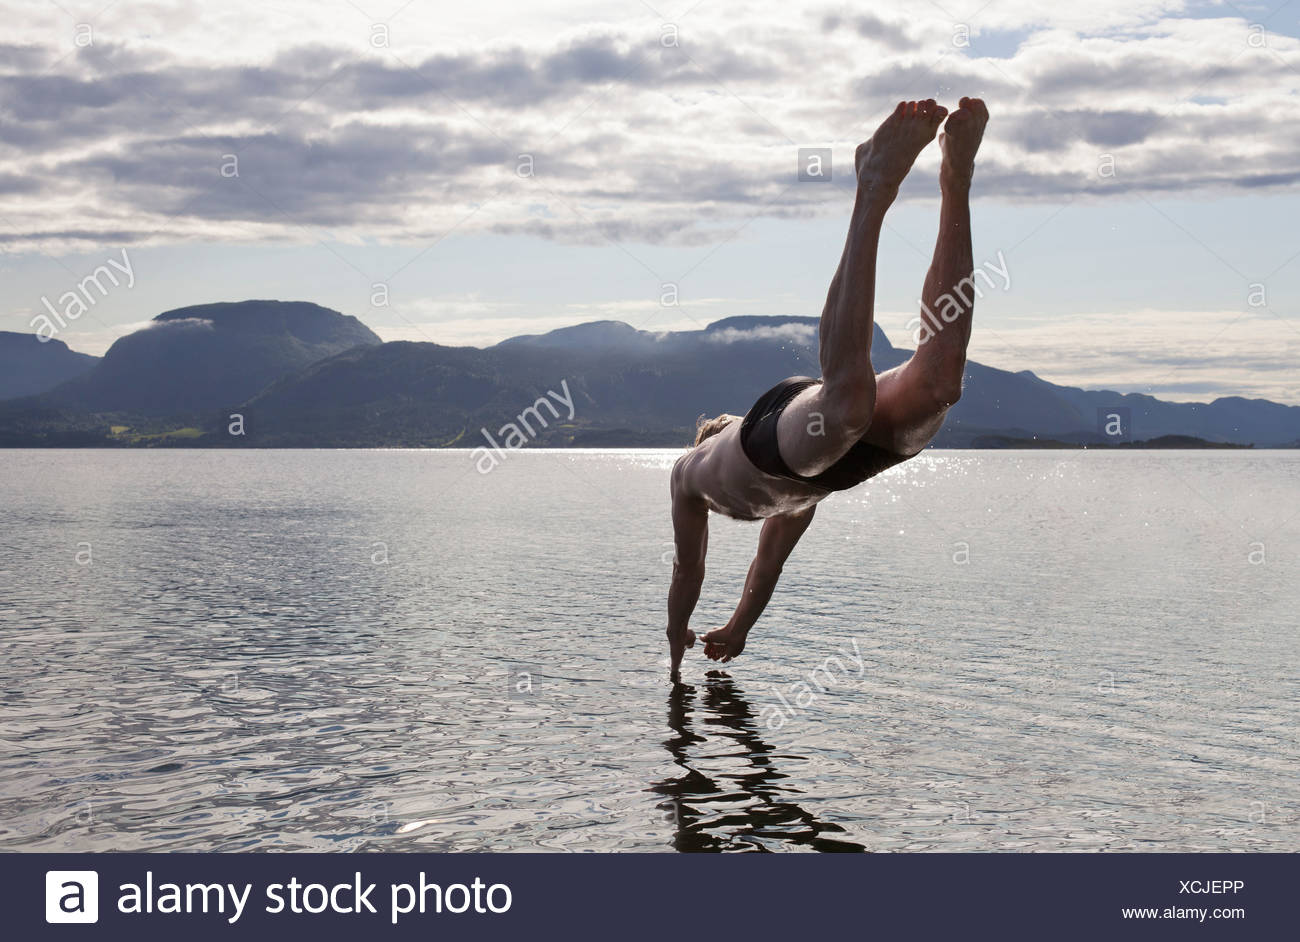 Man diving into water, Aure, Norway - Stock Image